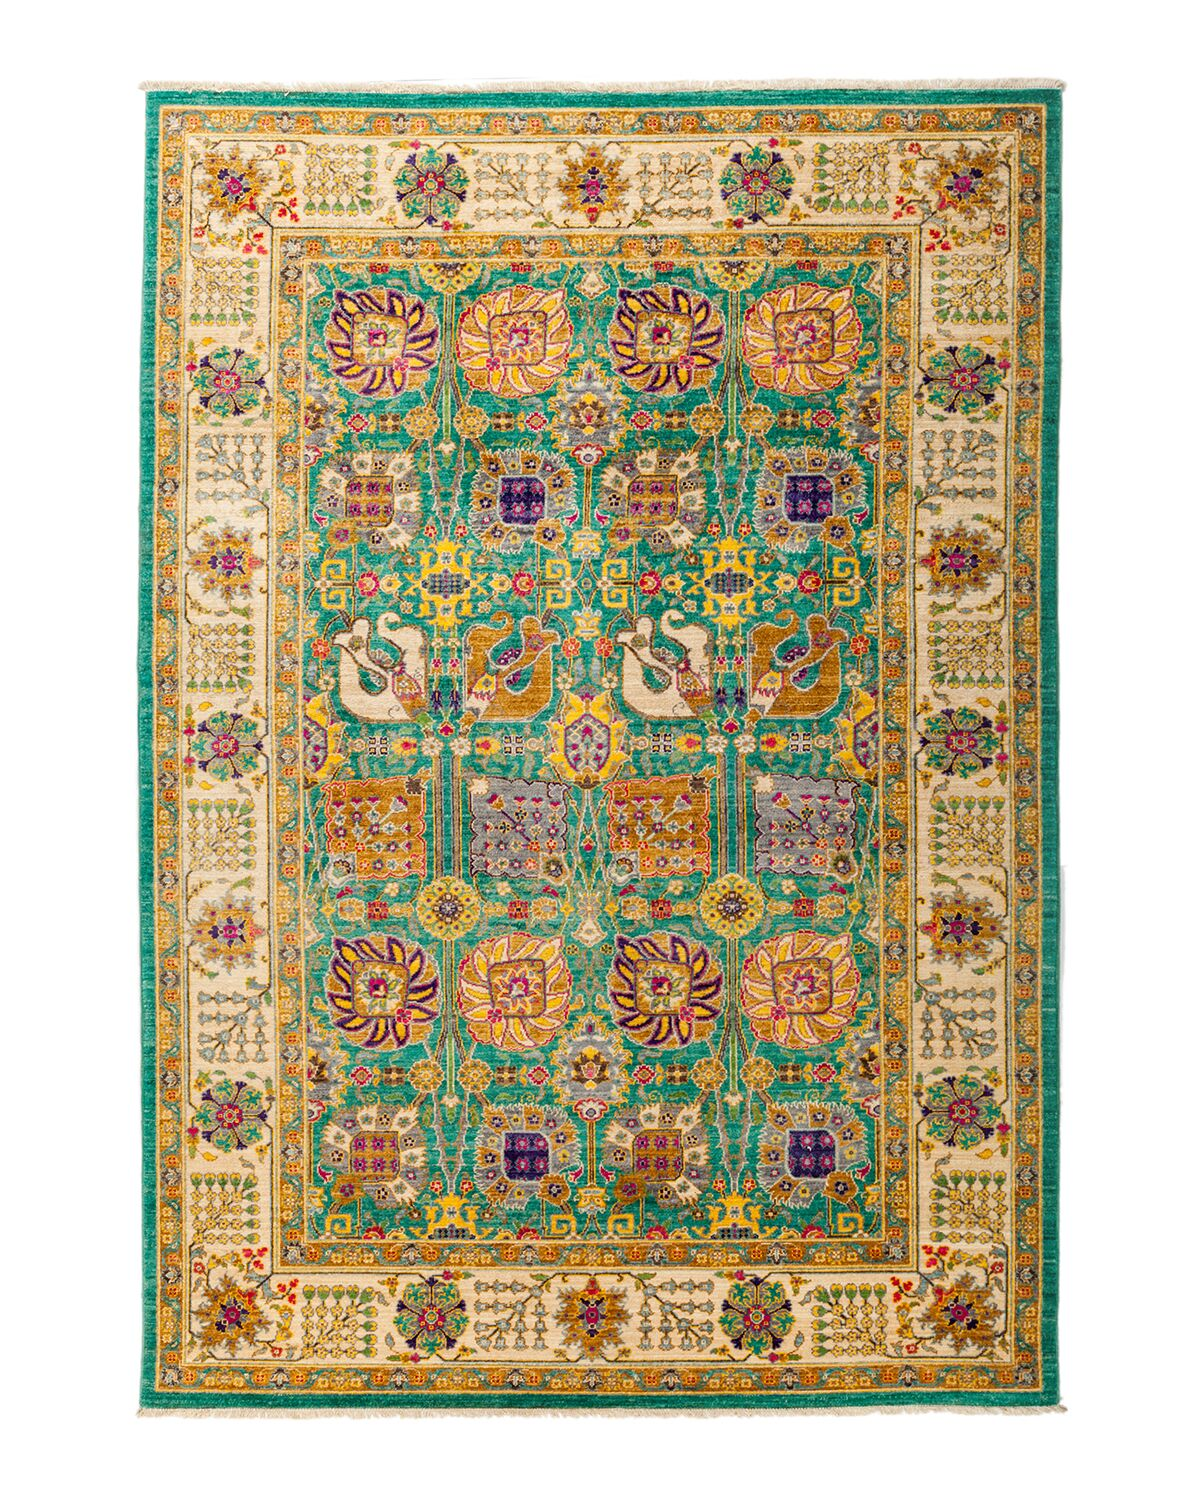 One-of-a-Kind Eclectic Vivid Hand-Knotted Multicolor Area Rug Rug Size: Rectangle 6'2